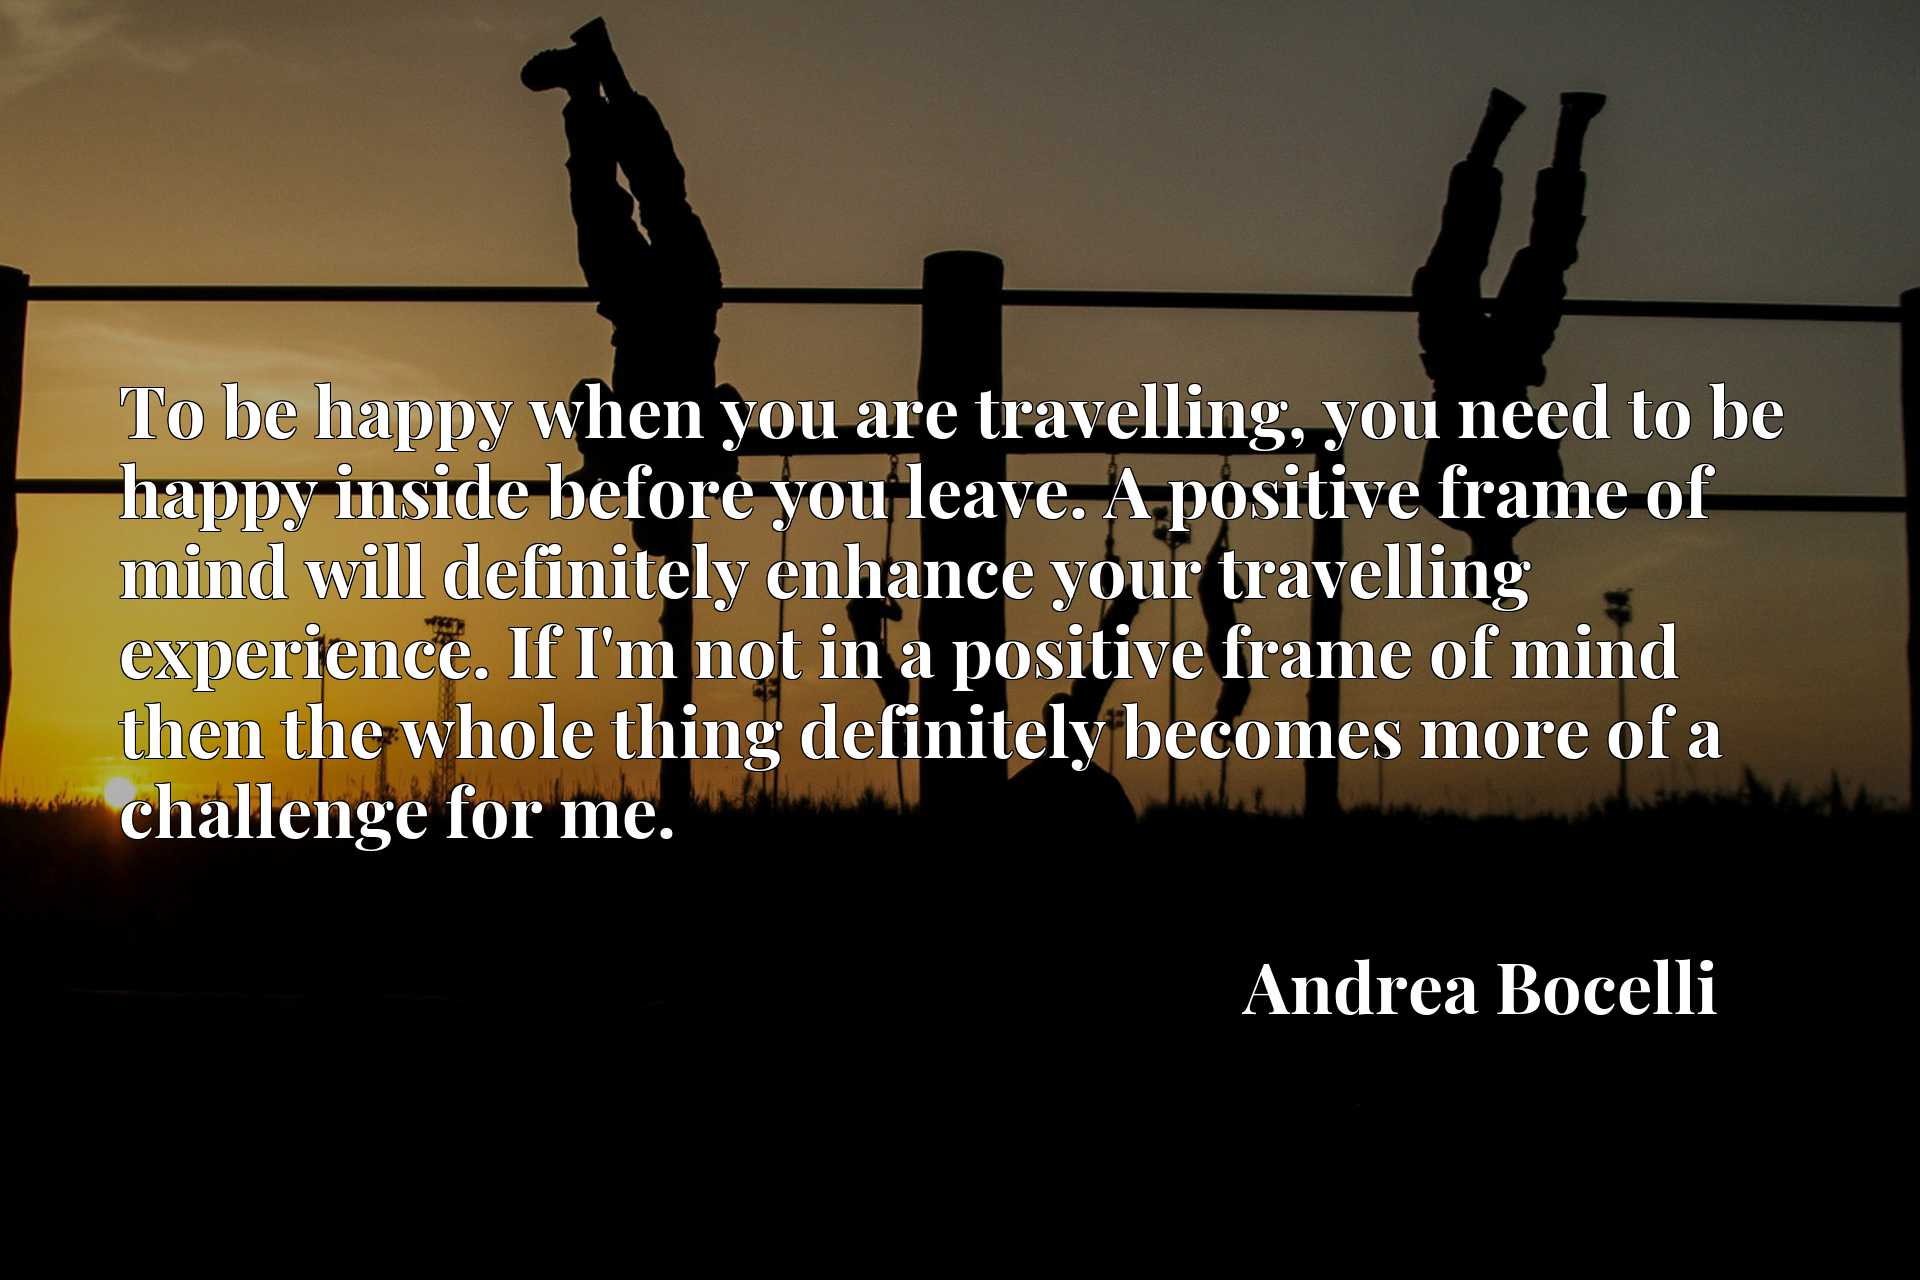 To be happy when you are travelling, you need to be happy inside before you leave. A positive frame of mind will definitely enhance your travelling experience. If I'm not in a positive frame of mind then the whole thing definitely becomes more of a challenge for me.